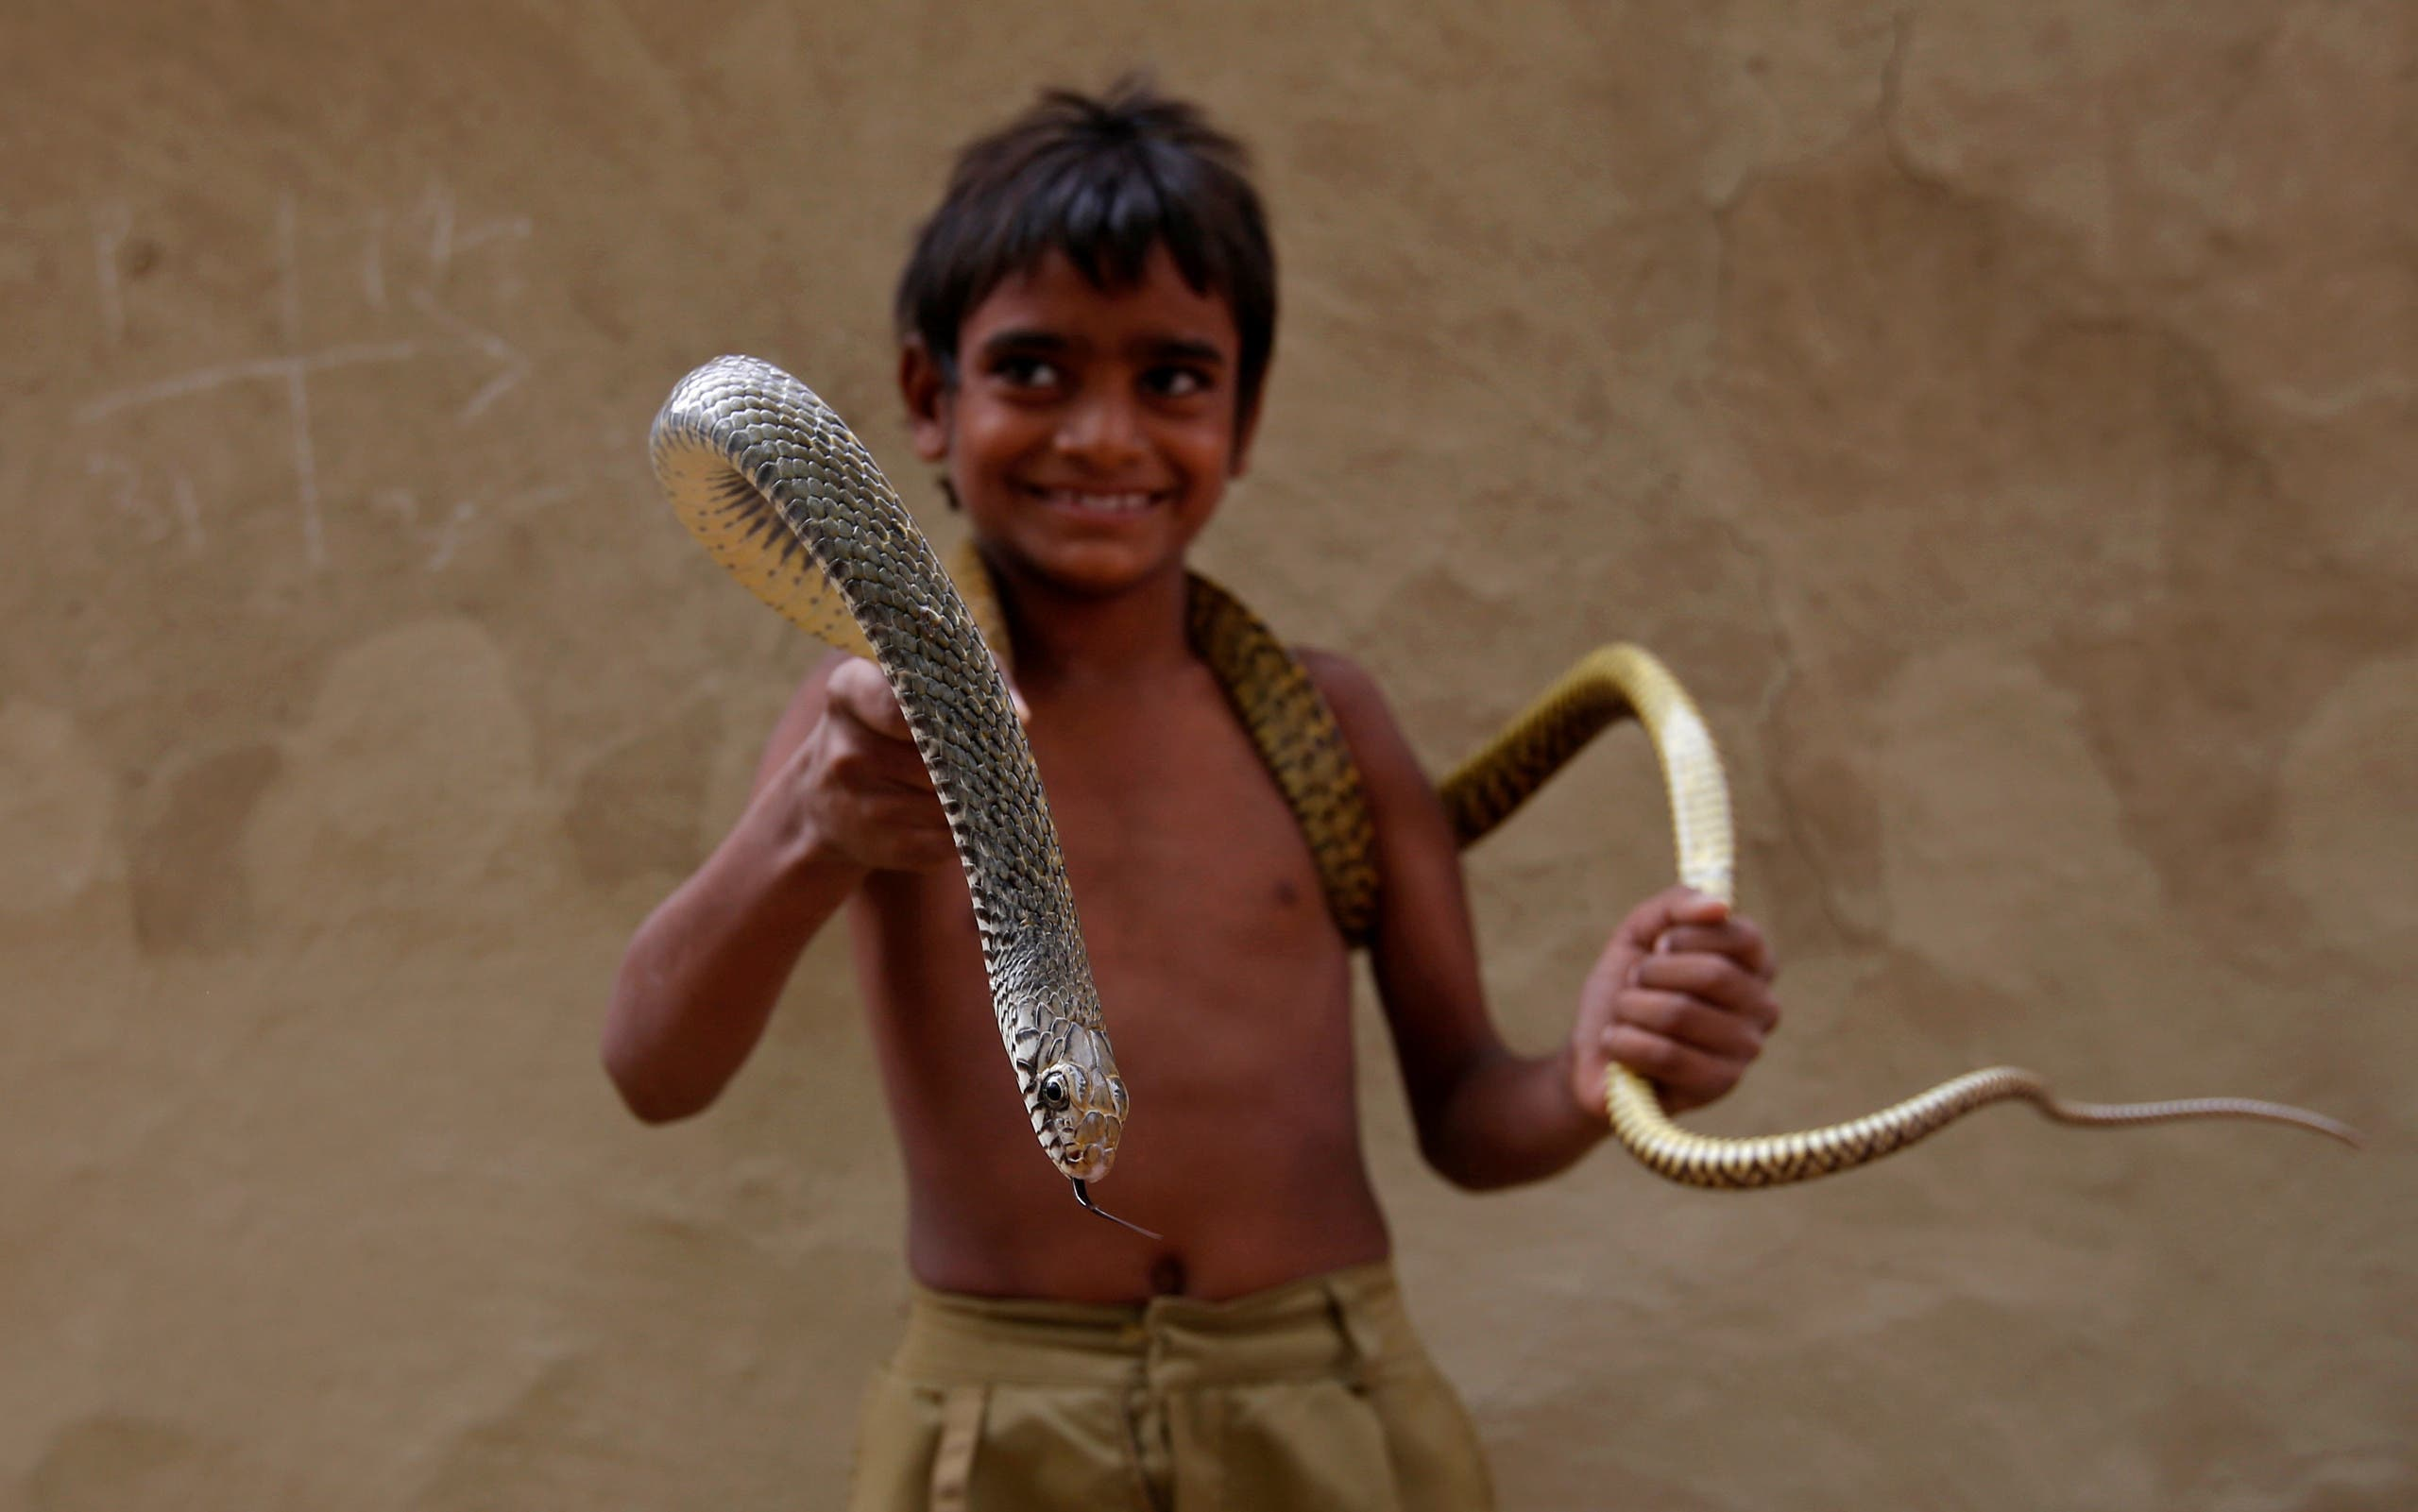 Binu Nath poses for a photograph with a snake in Jogi Dera (snake charmers settlement), in the village of Baghpur, in the central state of Uttar Pradesh, India. REUTERS